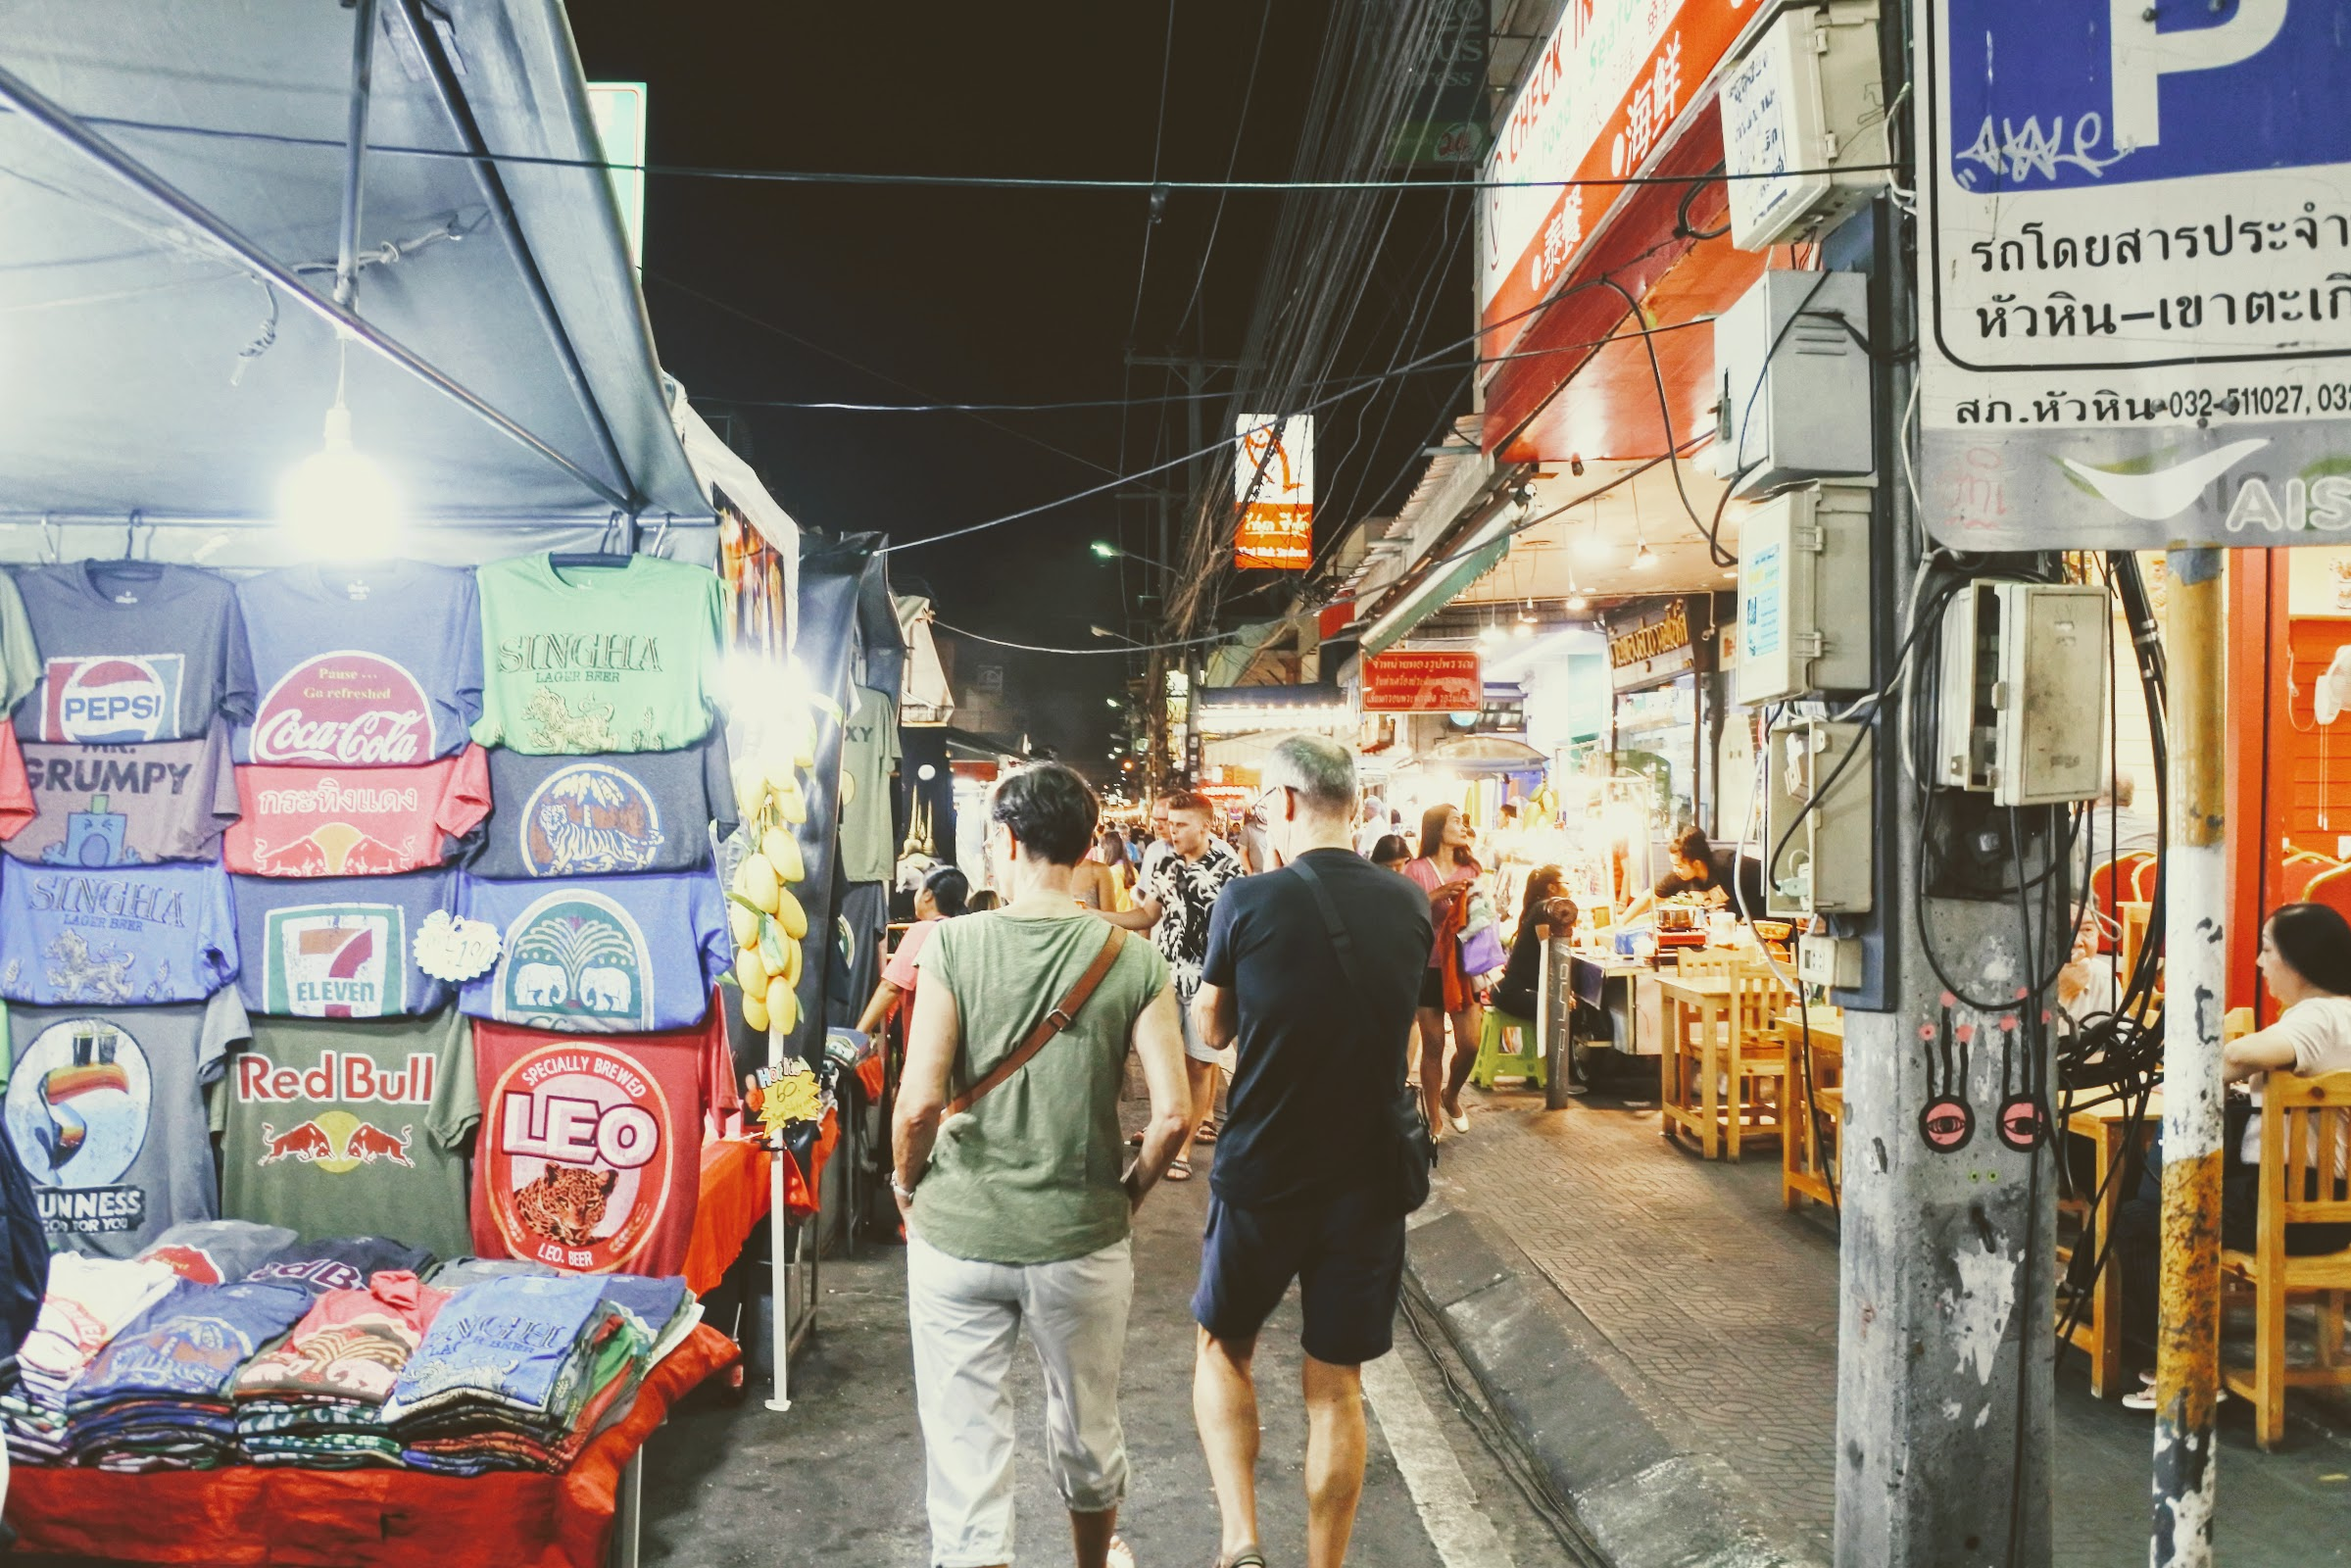 Hua Hin Night market is one of the must-go night markets in Hua Hin.